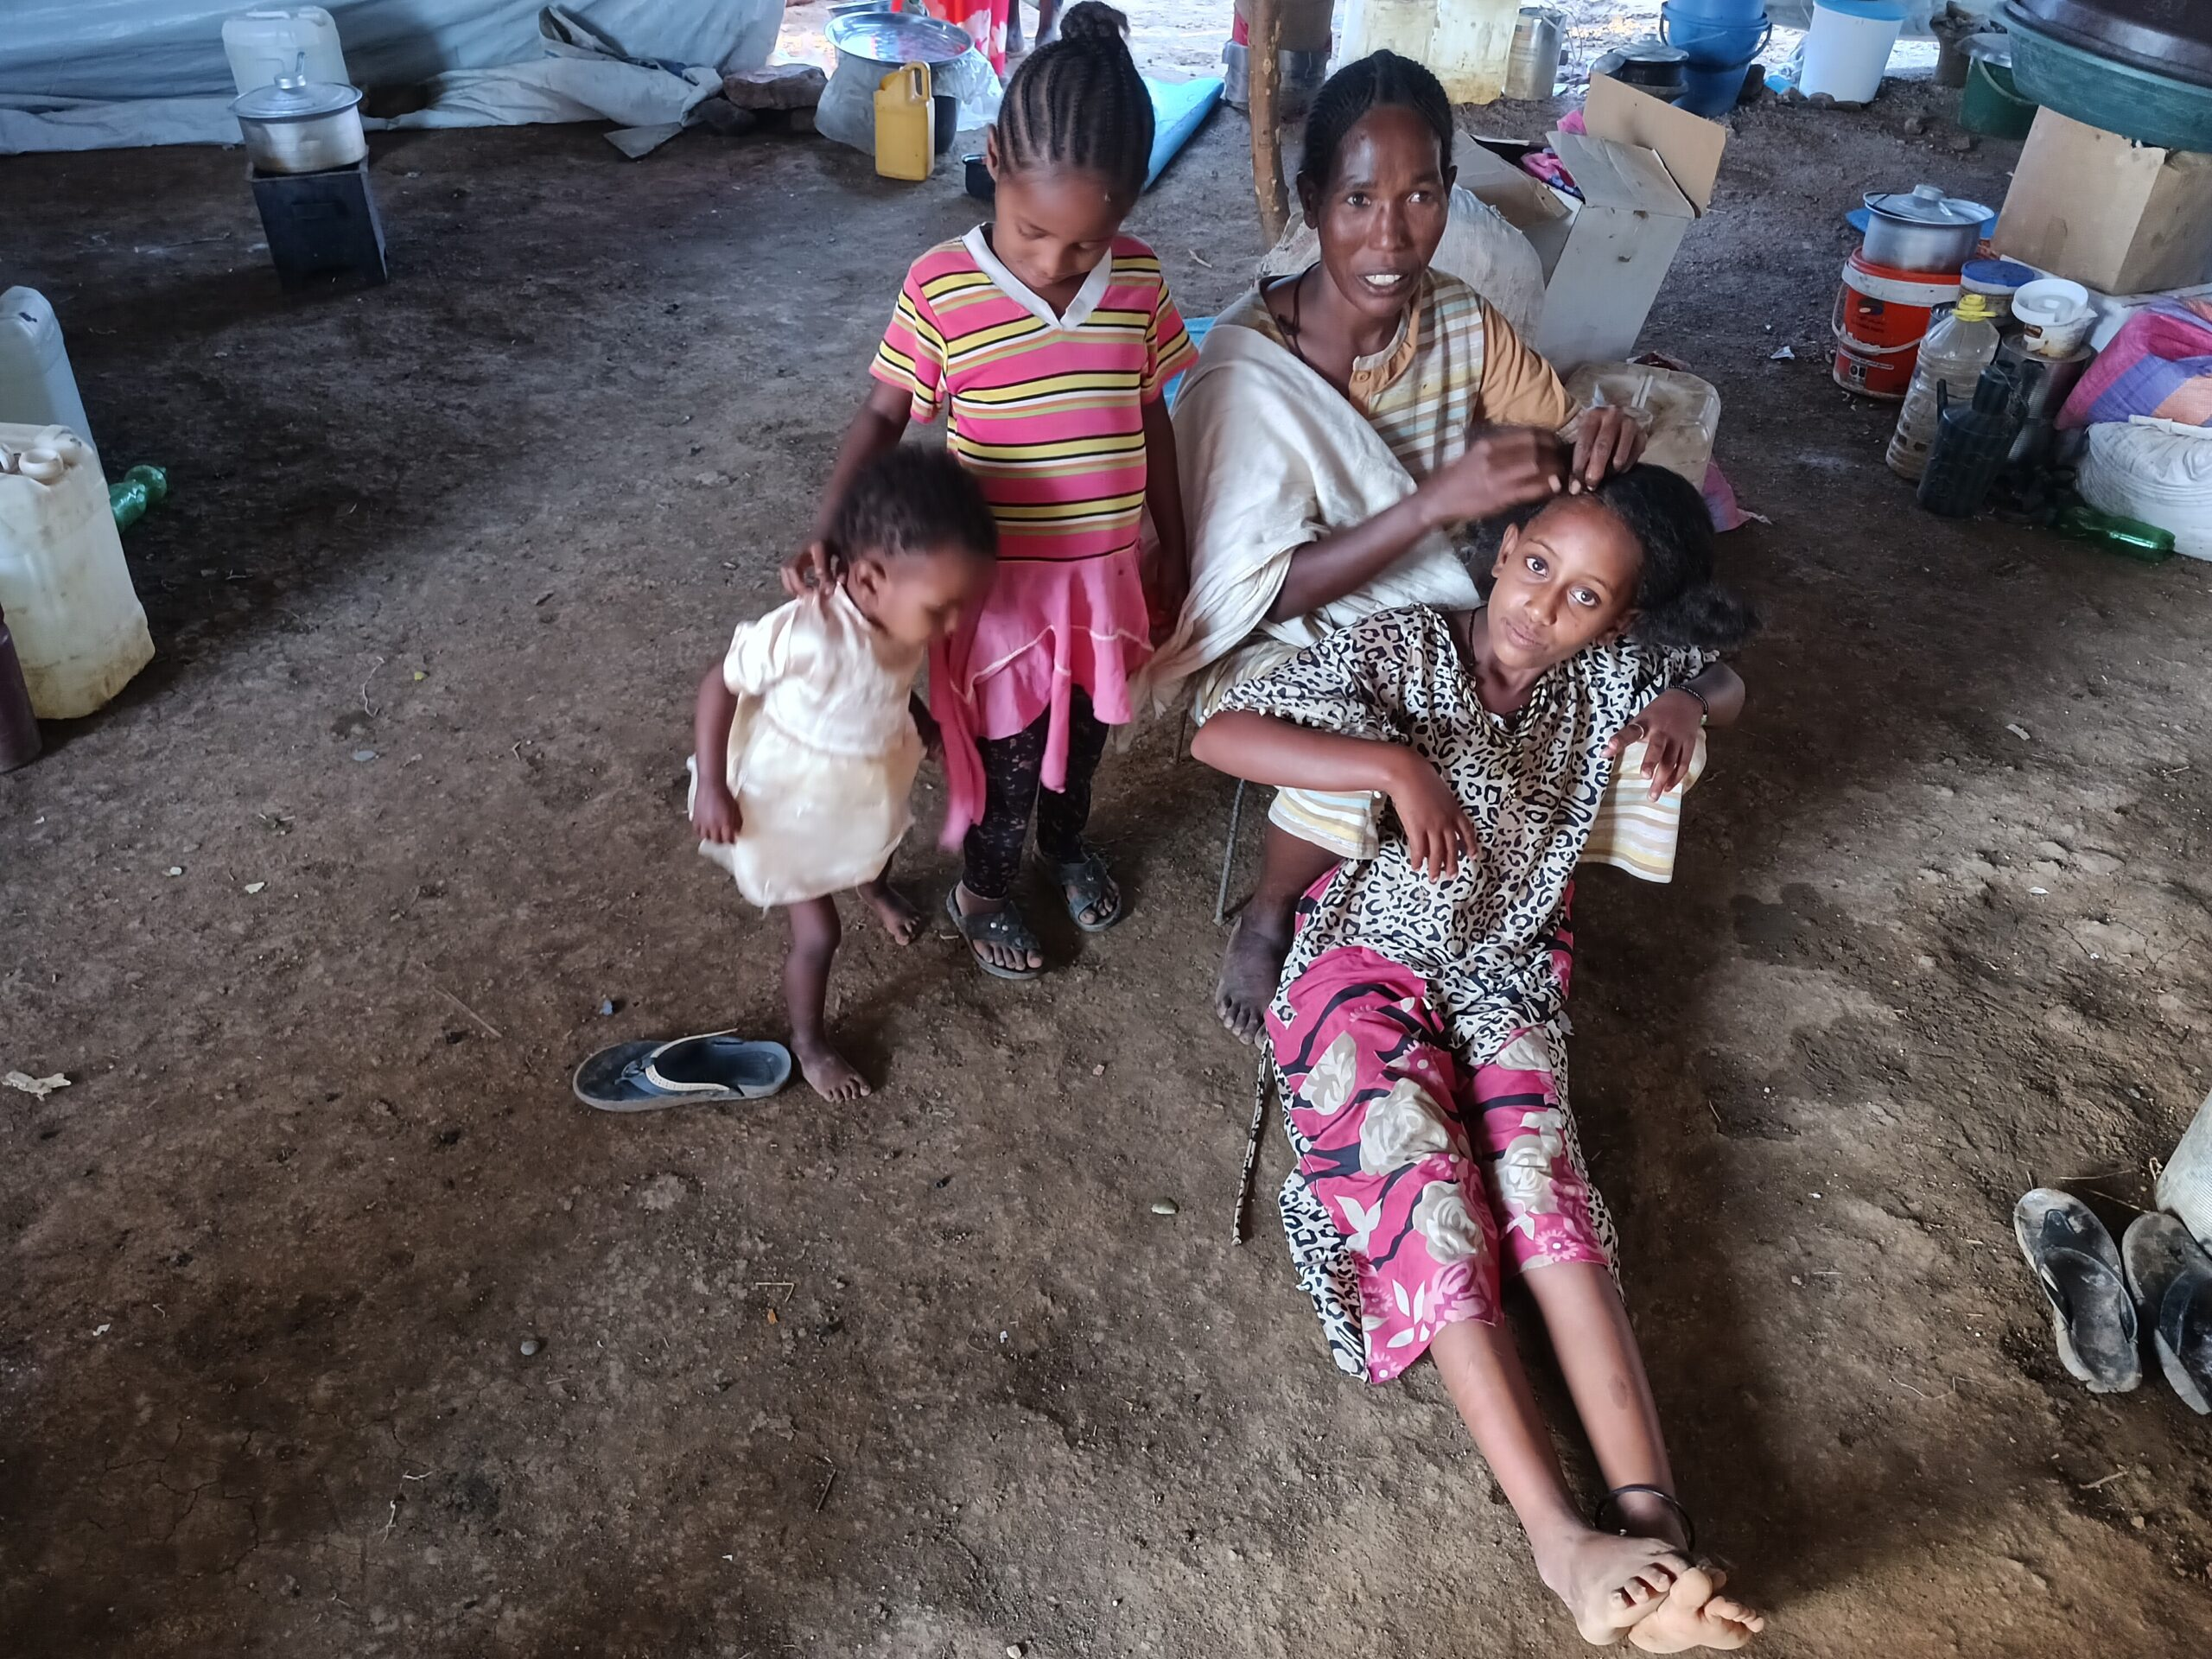 """Awetash Yibra became separated from her three children during a massacre in the town of Mai Kadra, Ethiopia. After 52 days of searching she learned they were in a refugee camp in Sudan. Her 8-year-old is still traumatized, Yibra said. """"She was mourning my death."""""""